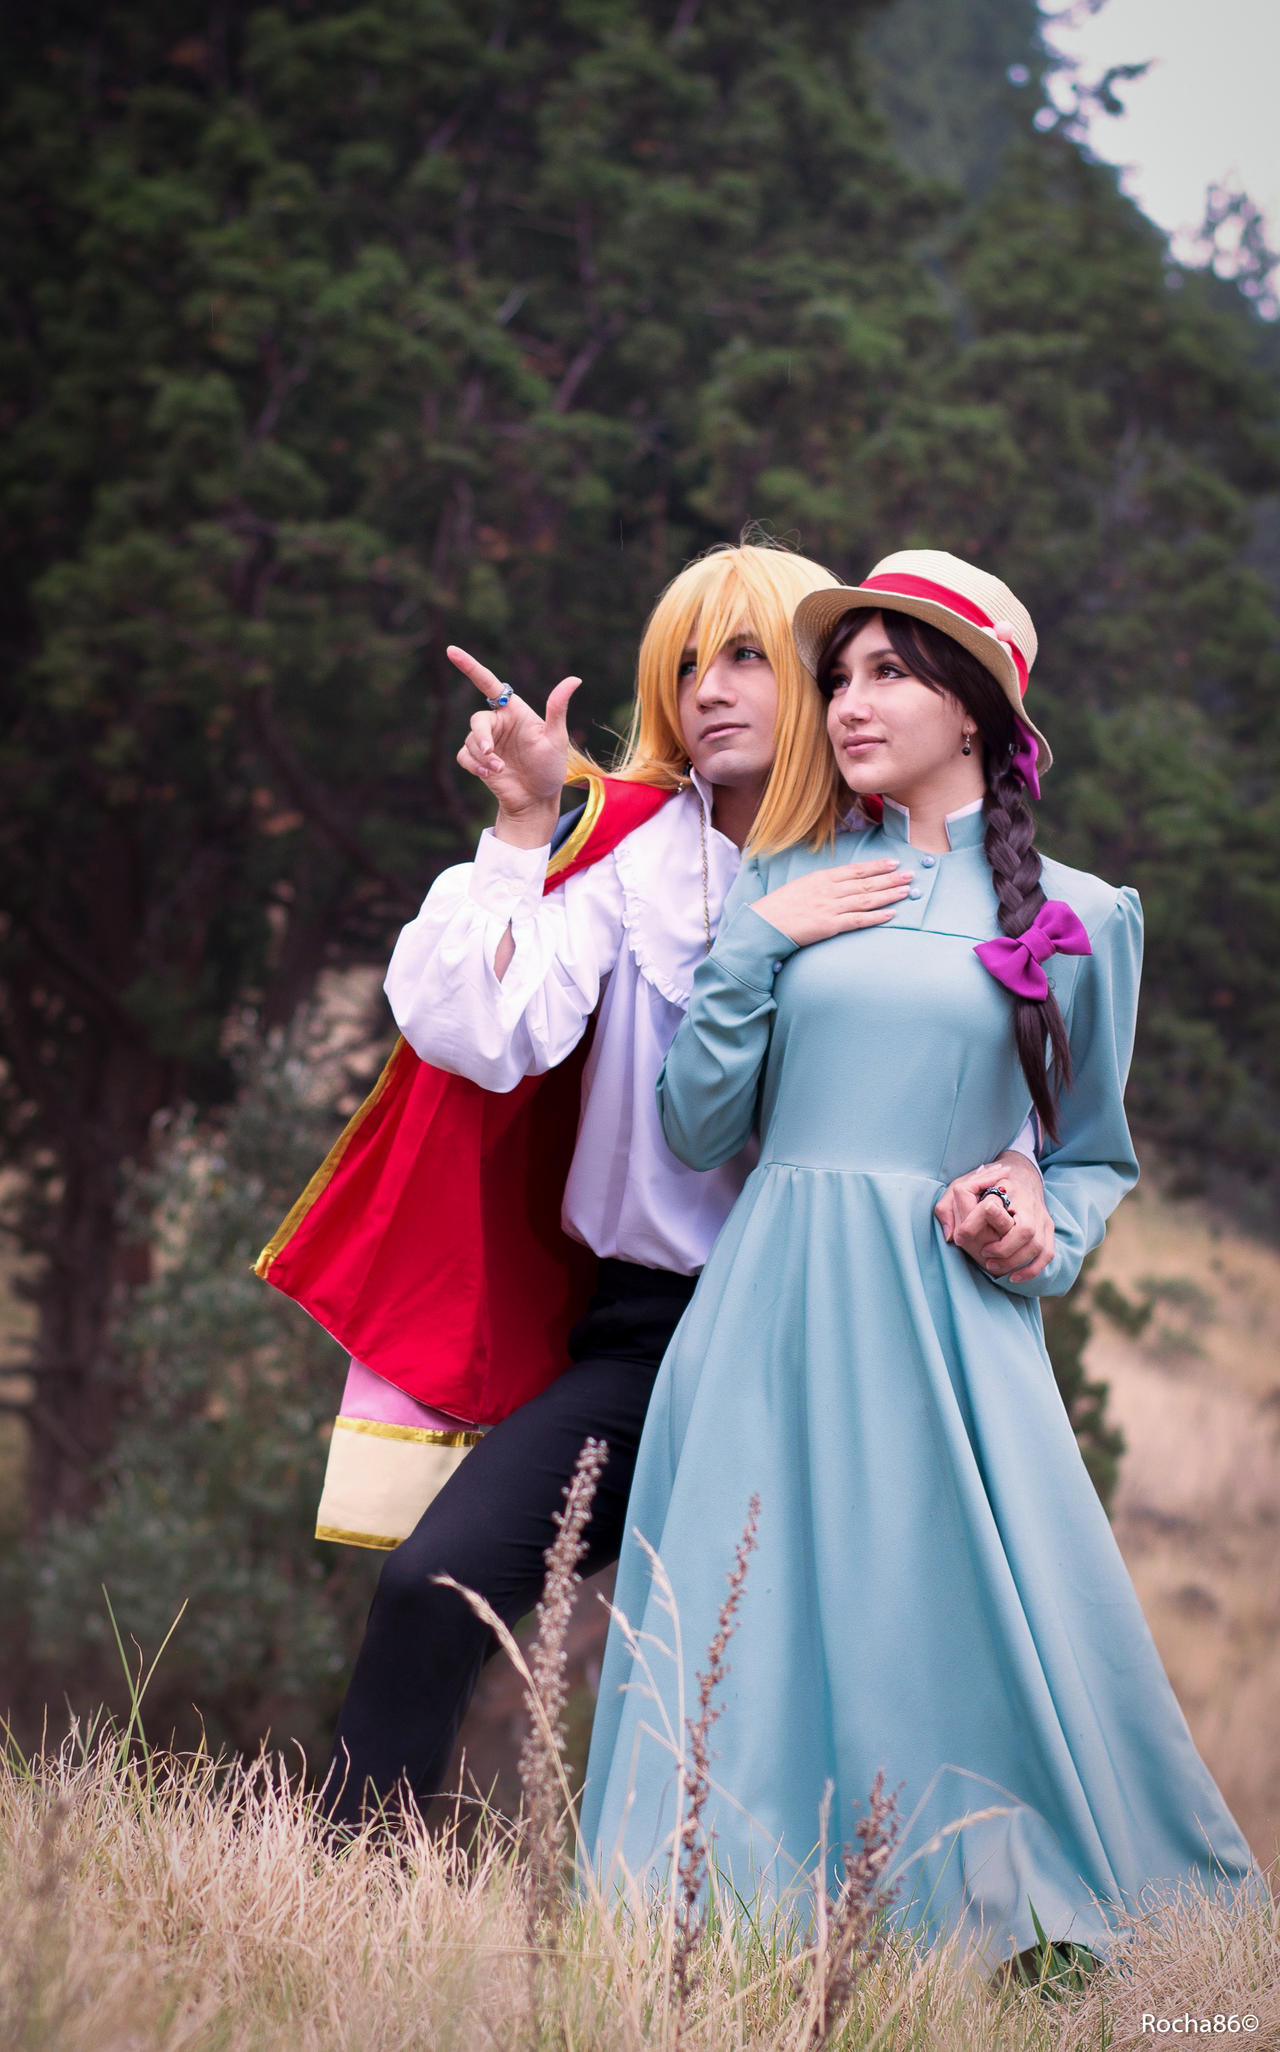 Sophie y Howl de Howl's Moving Castle by rocha86 on DeviantArt